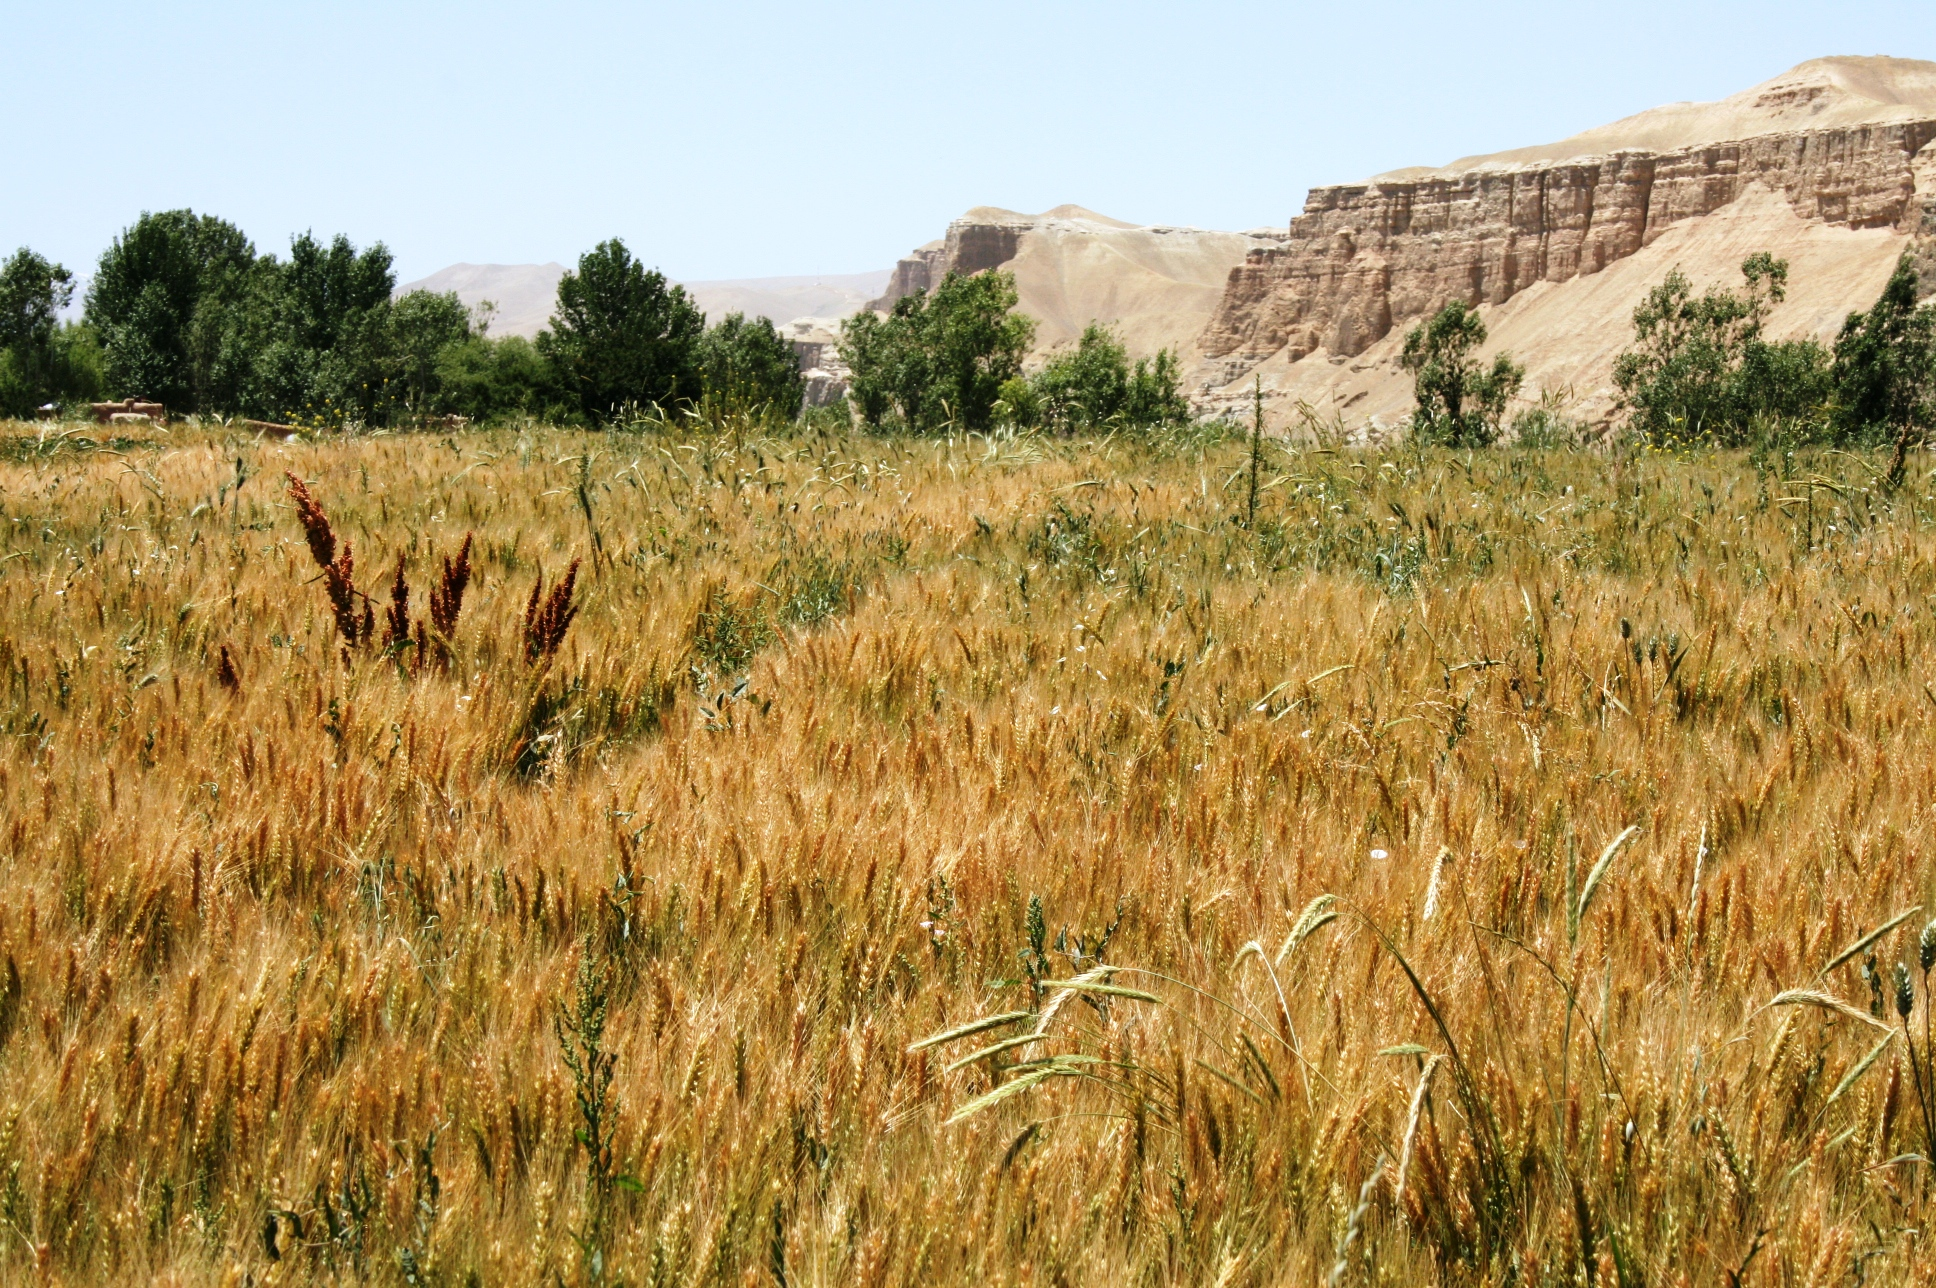 Afghanistan faces a wheat defict of over 700,000 tons in 2010